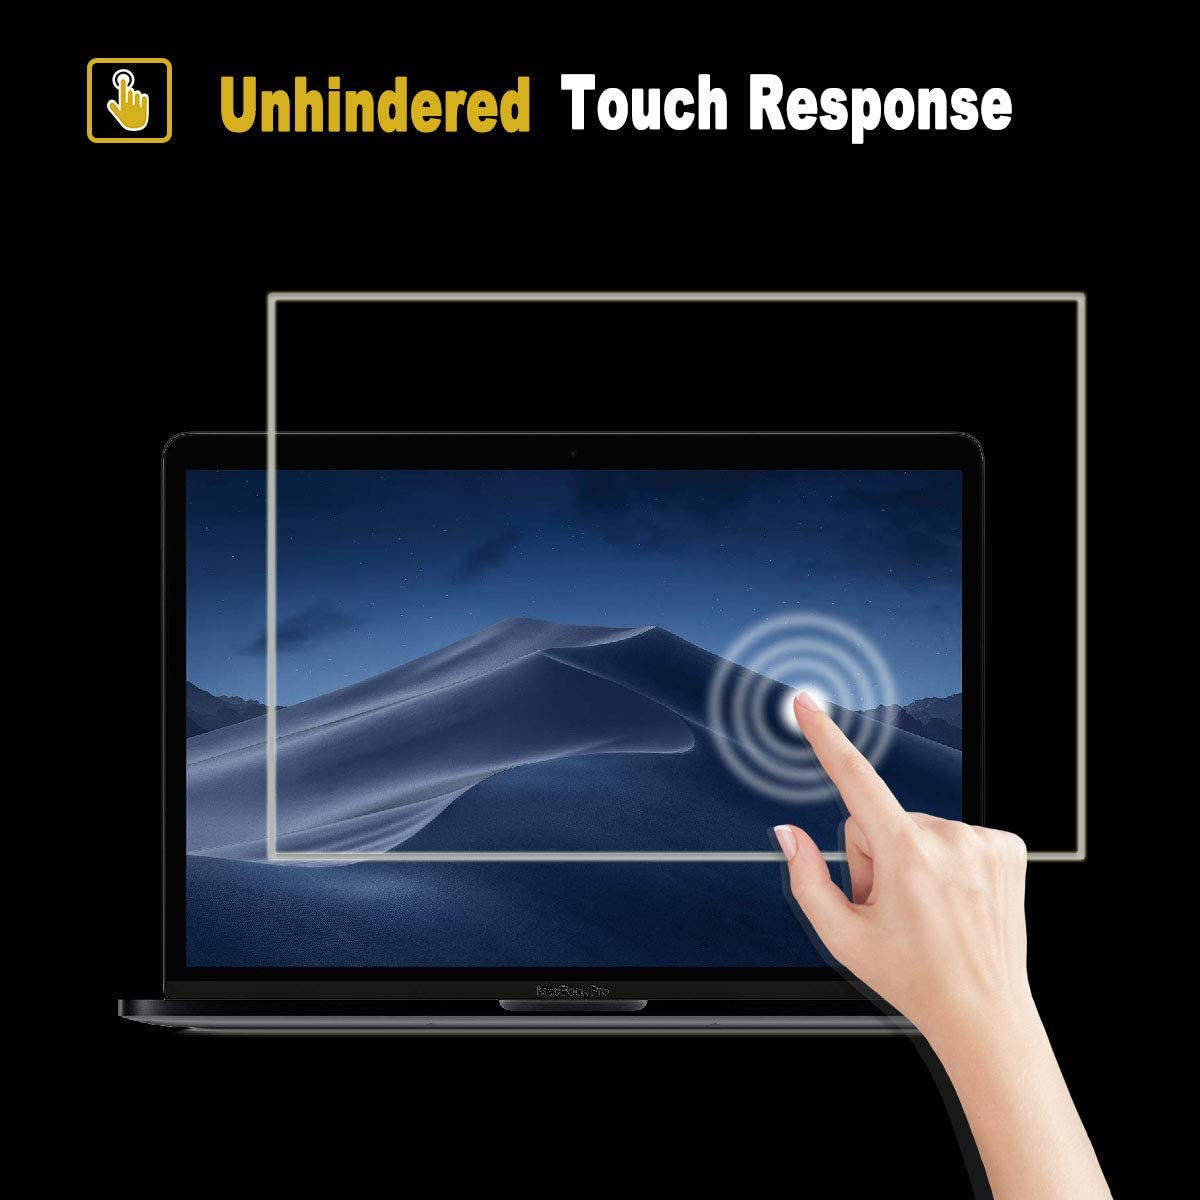 Anti Scratch No Bubble Tempered Glass Screen Protector For 2016-2019 MacBook Pro 13 Inch No Waves Apple Model A2159 A1706 A1708 A1989 Reduce Fingerprint 2019 Newest Glass Screen Protector